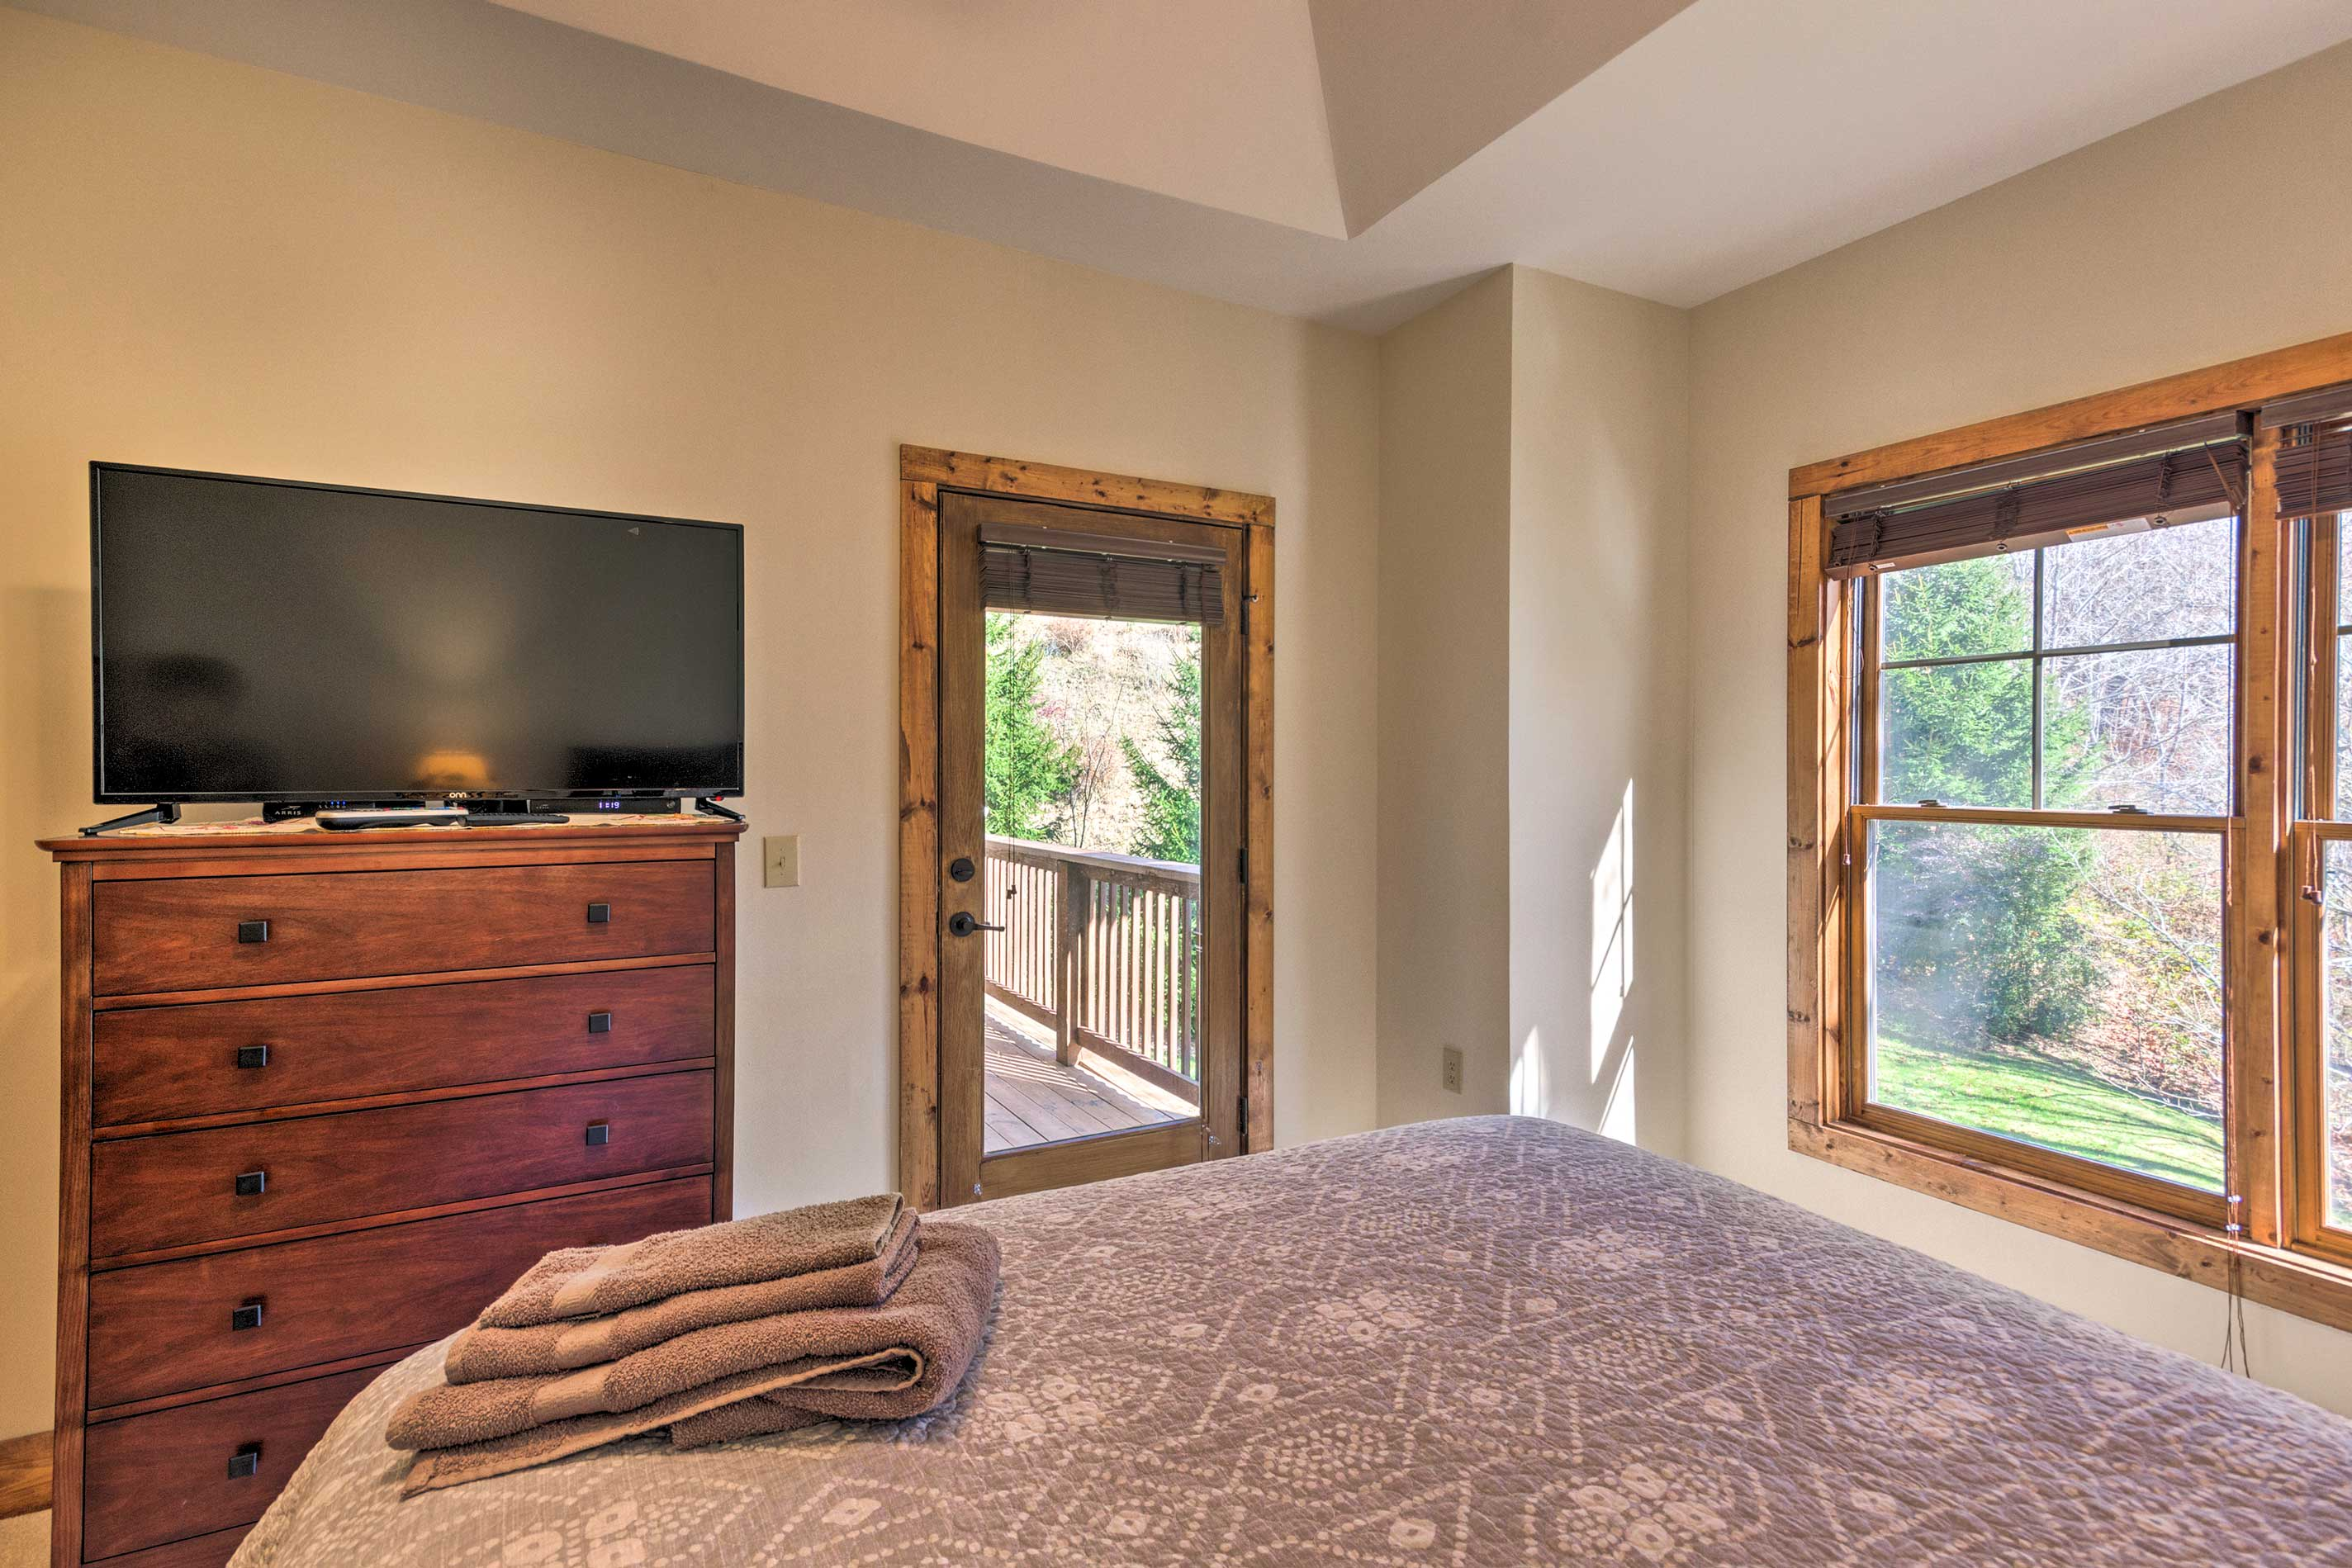 The room boasts a cable TV and balcony access.